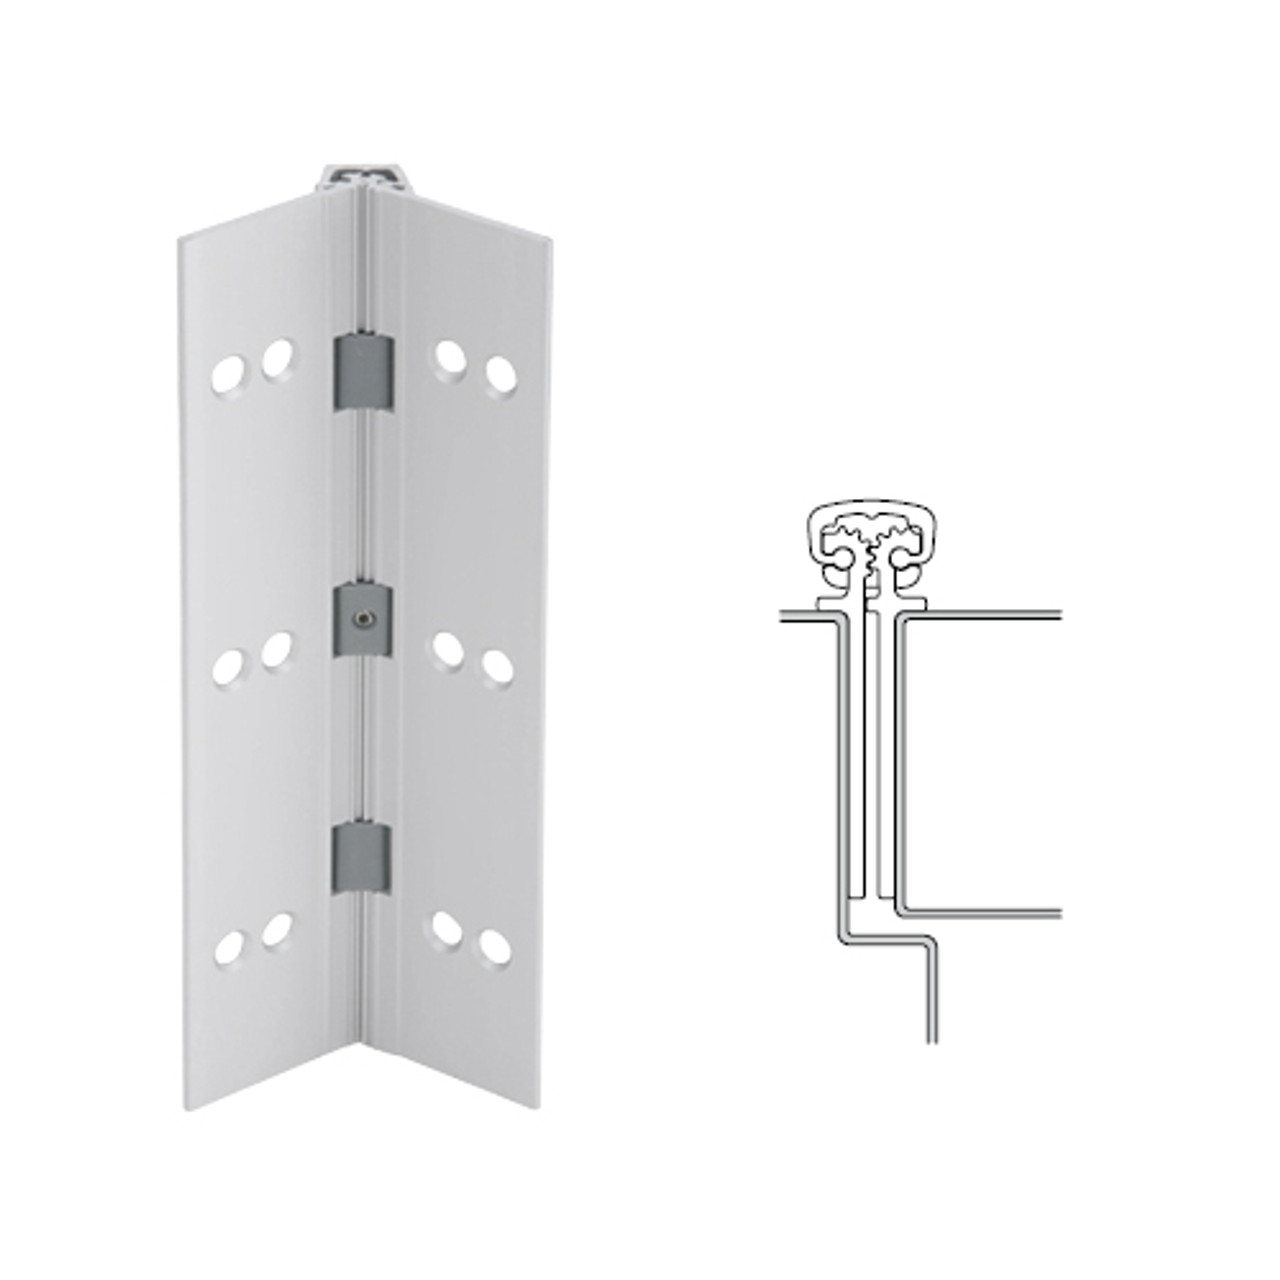 027XY-US28-83 IVES Full Mortise Continuous Geared Hinges in Satin Aluminum